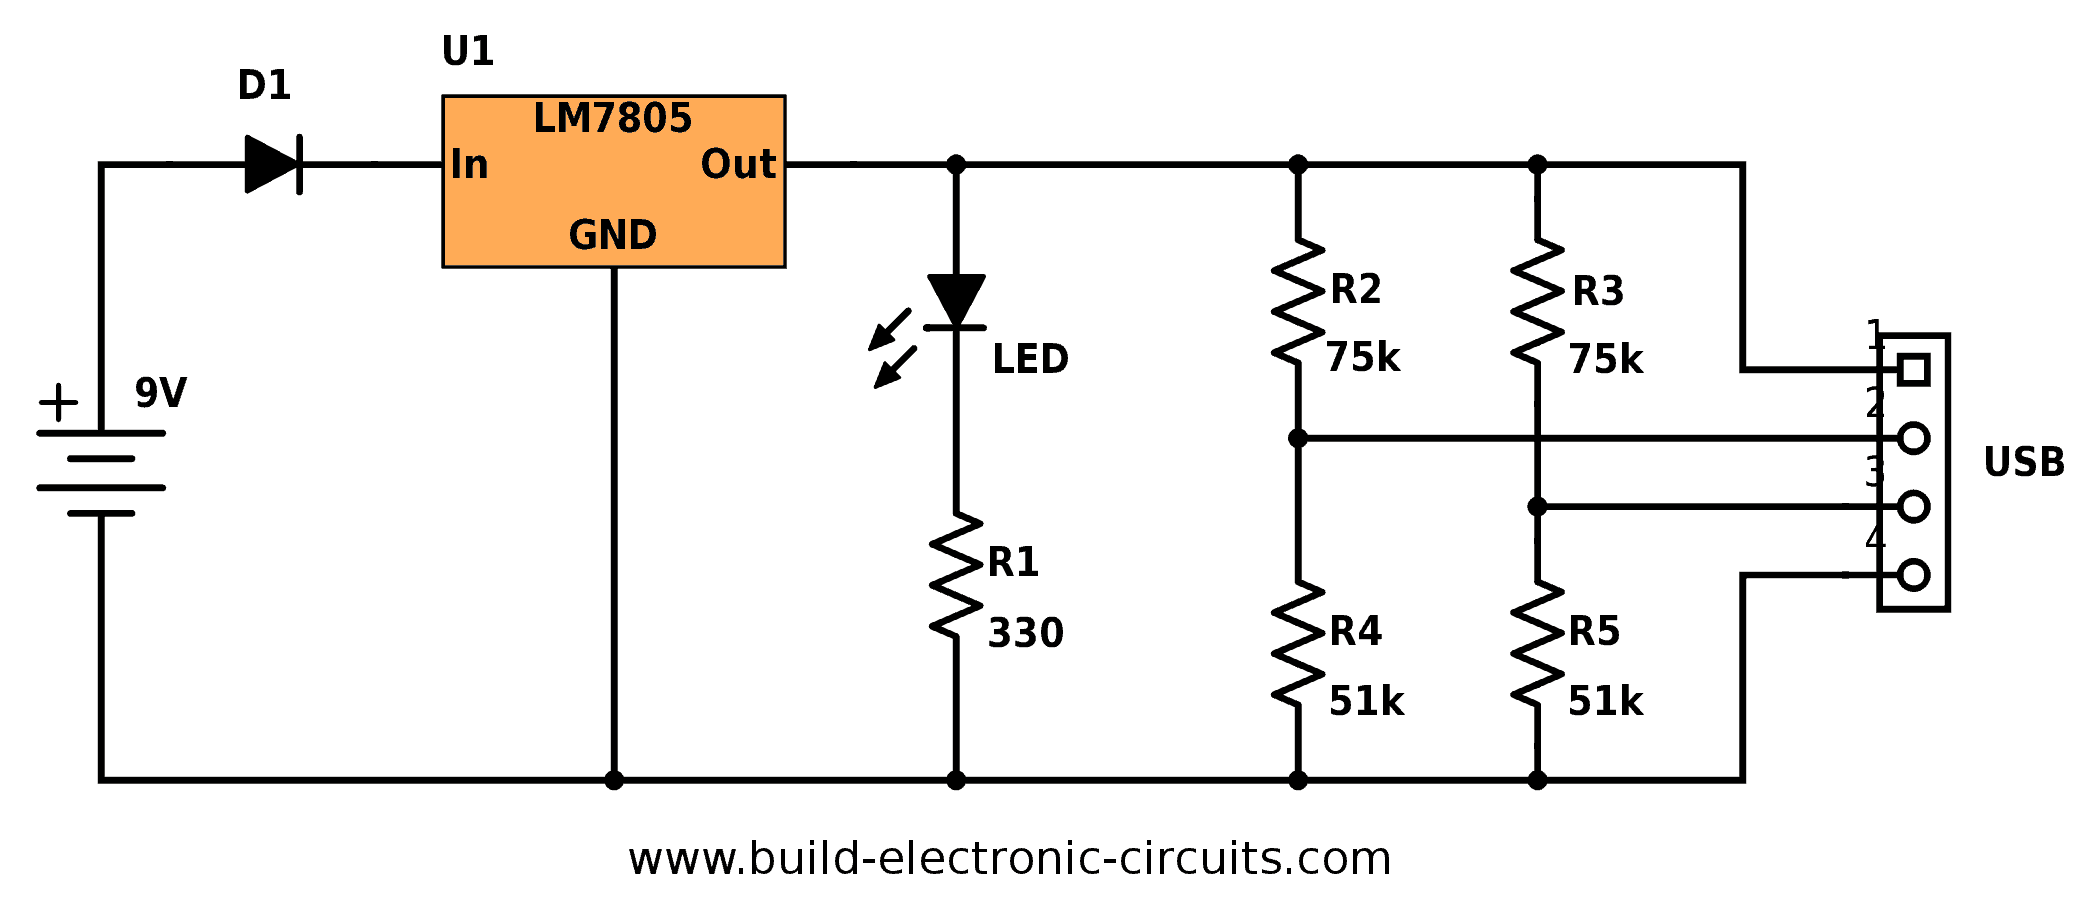 Portable USB Charger circuit diagram values portable usb charger circuit build electronic circuits usb charger wiring diagram at bayanpartner.co